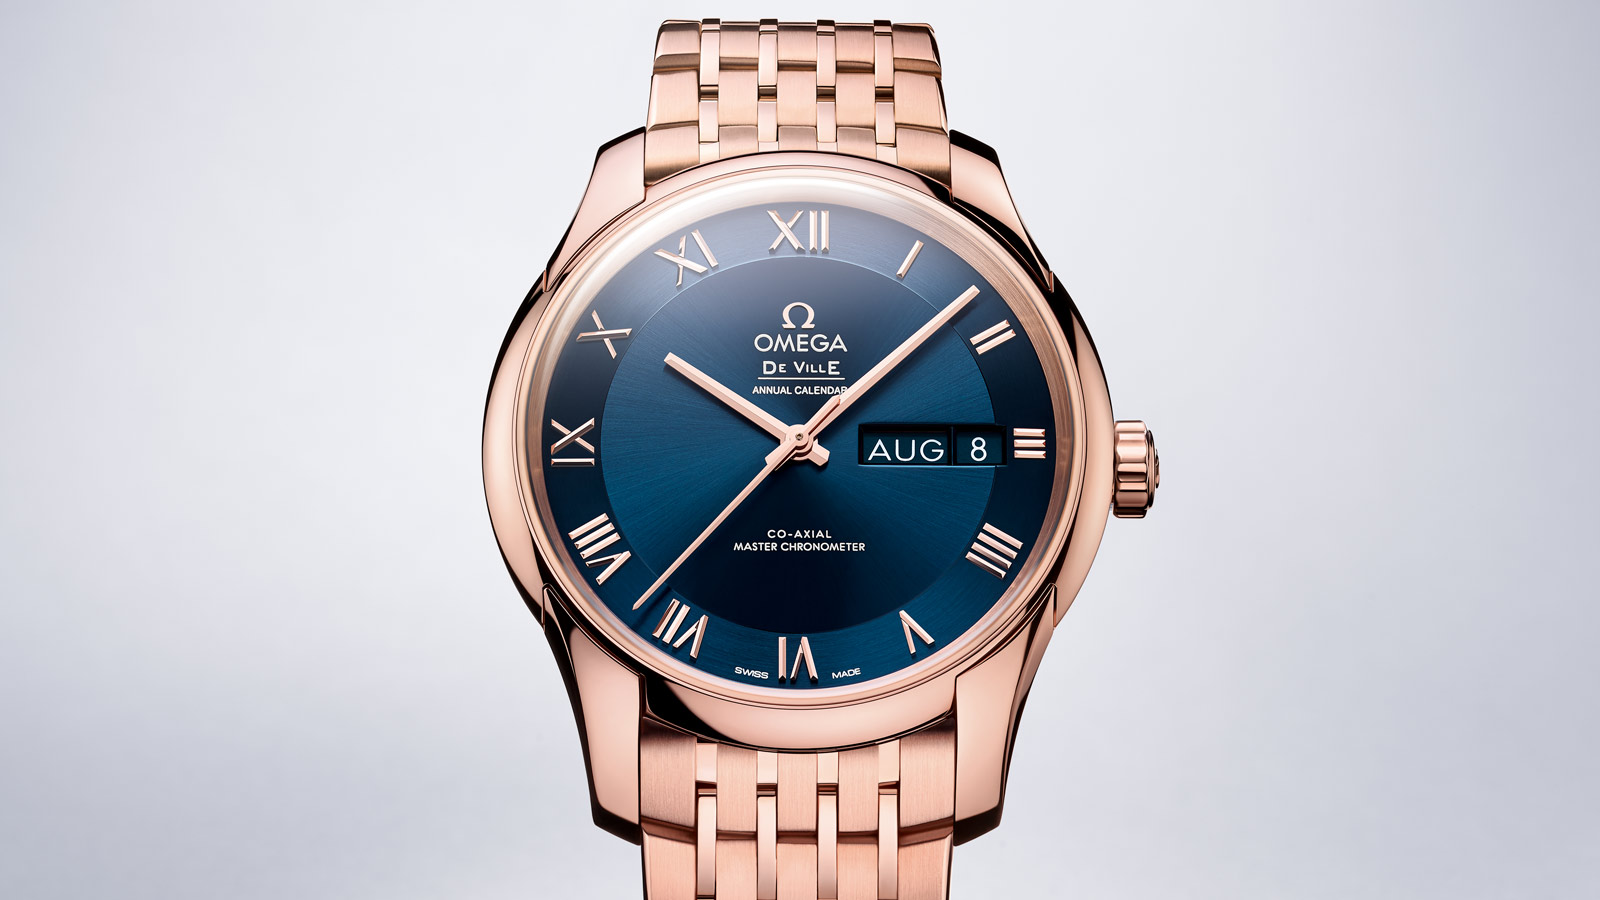 De Ville アワービジョン Hour Vision Omega Co‑Axial Master Chronometer Annual Calendar 41mm - 433.50.41.22.03.001 - ビュー 1